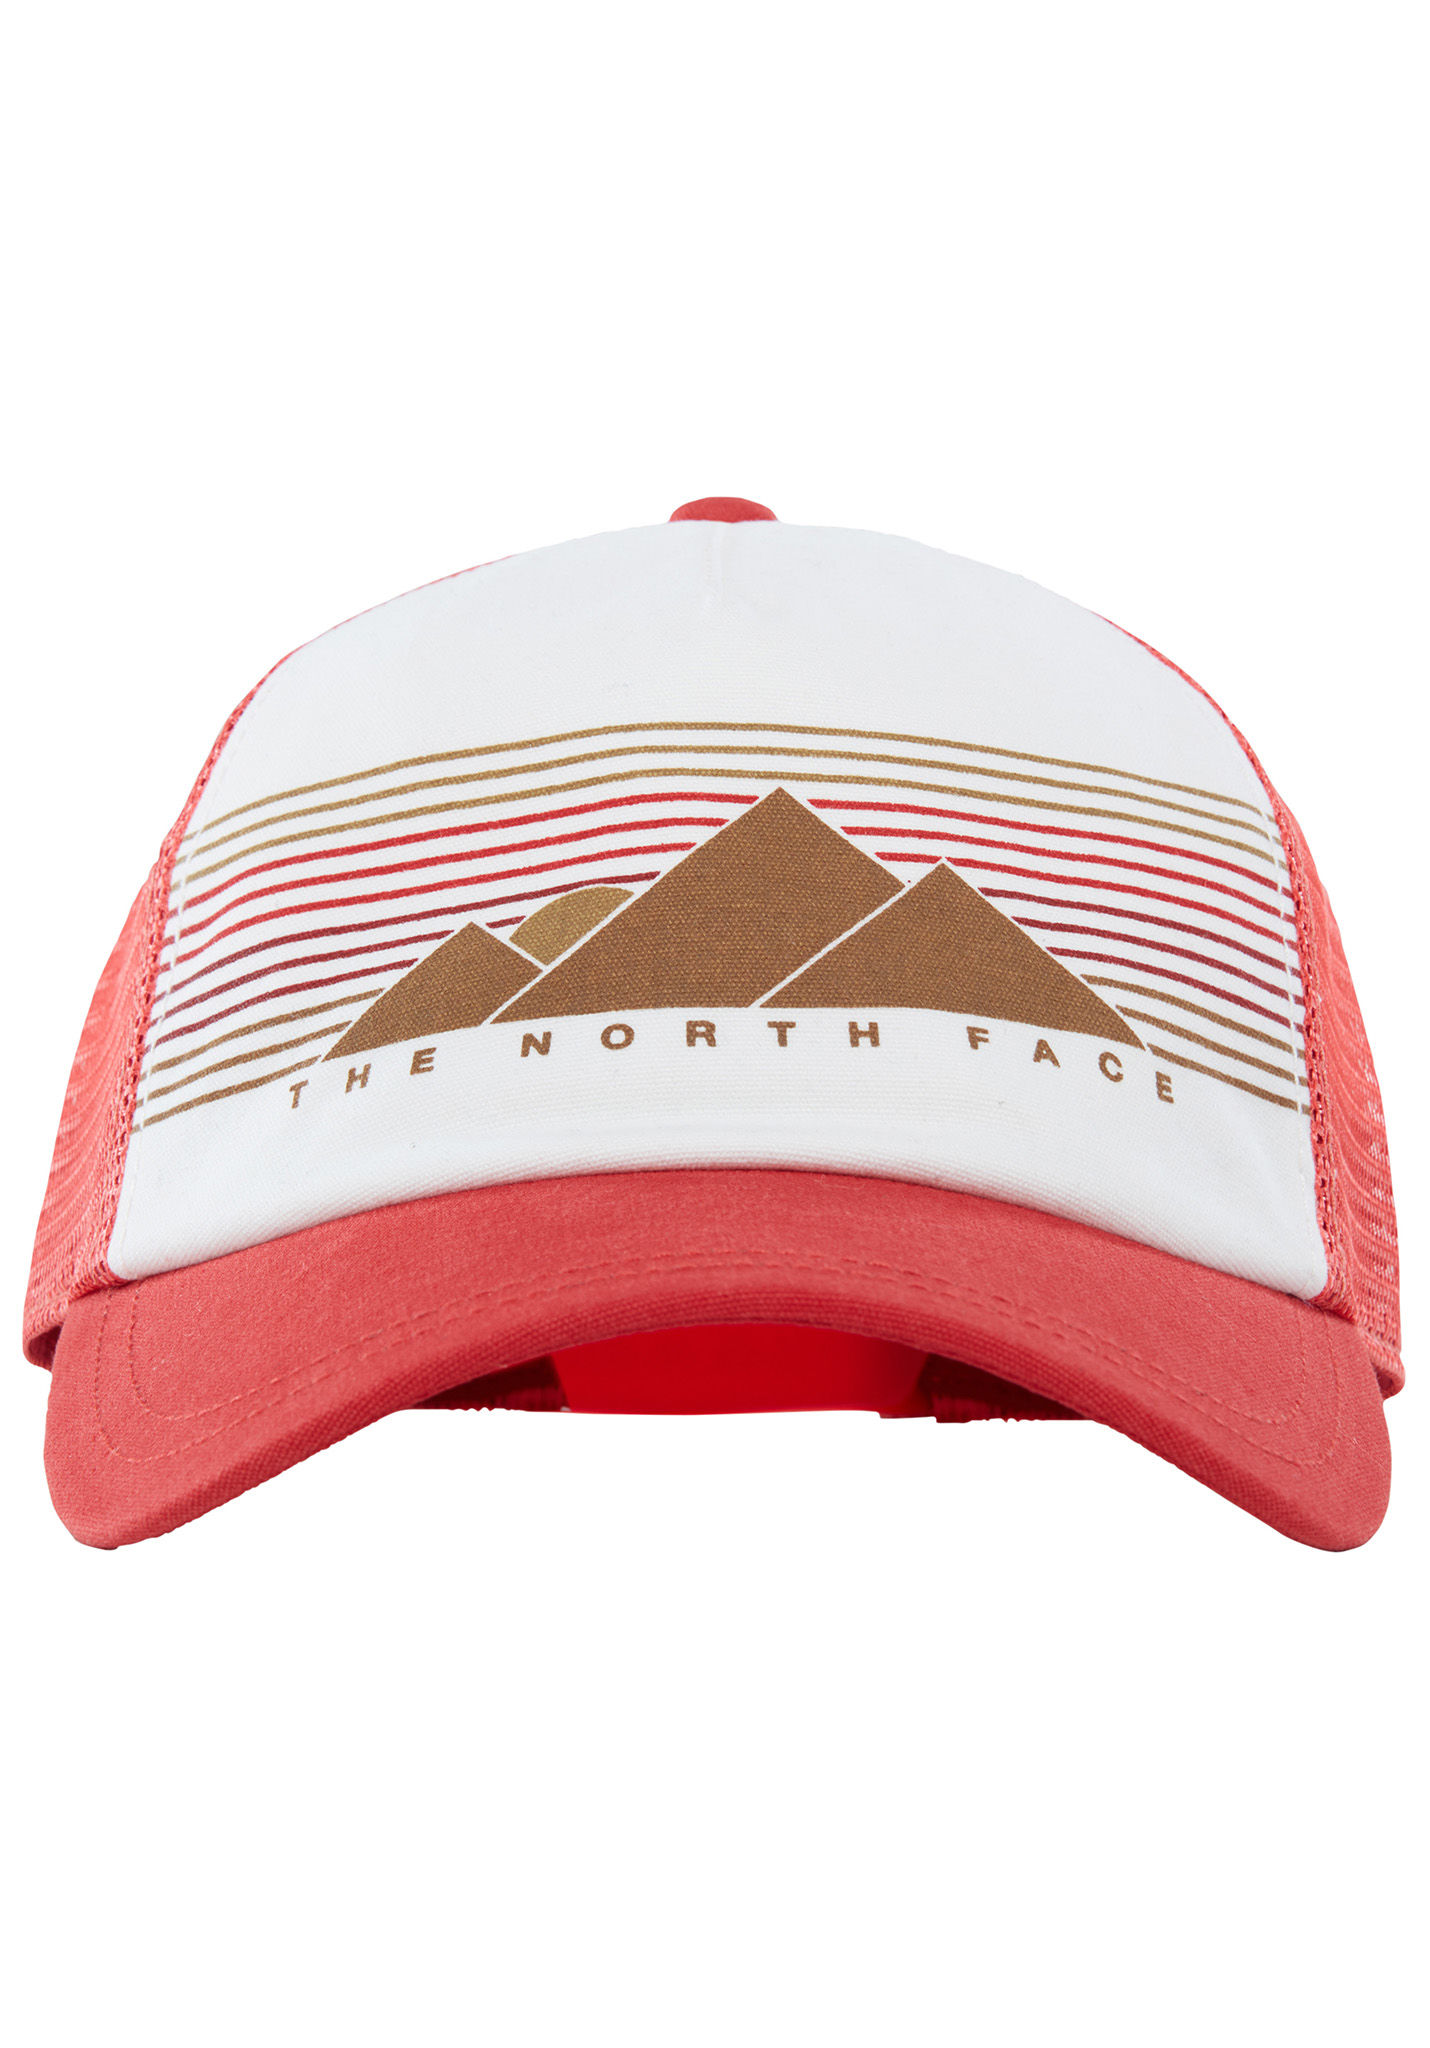 fc19a3eec53 THE NORTH FACE Lo Pro - Trucker Cap for Women - Red - Planet Sports